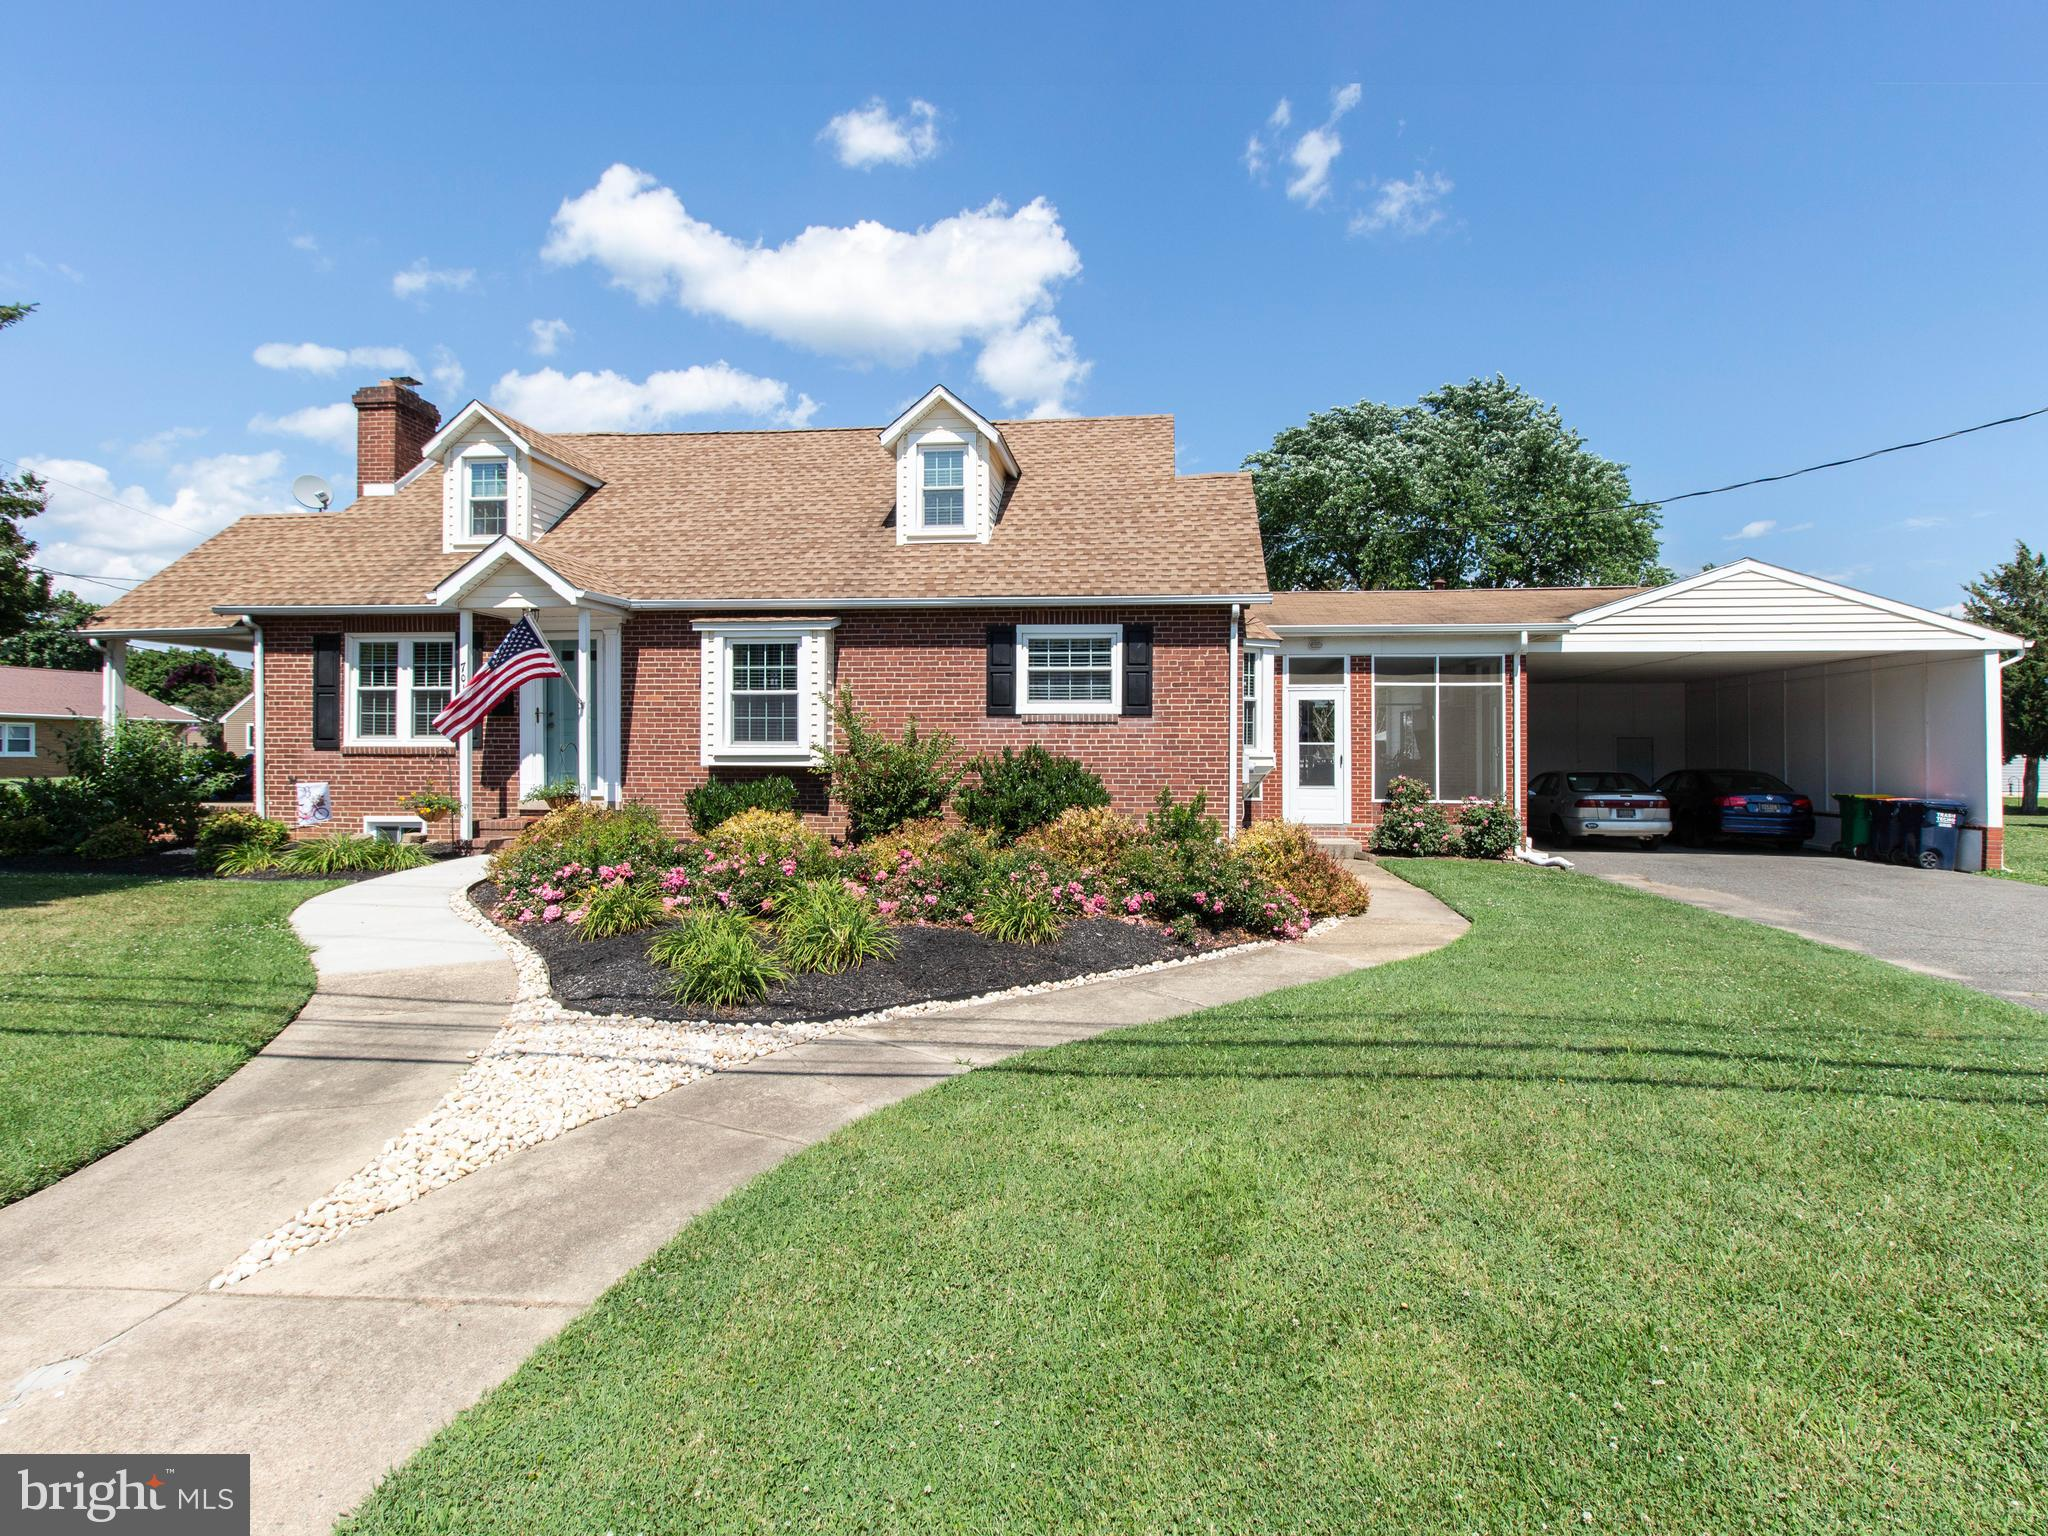 """Beautifully updated 4BR/2BA Cape Cod on a spacious 0.36 acre corner lot in the heart of Middletown and within walking distance to several Appoquinimink schools, Main Street shopping, and all that downtown Middletown has to offer.  The stately brick exterior and lush landscaping are accentuated by the split sidewalks leading up to the front of the home where you have 2 covered entrances to keep you out of the elements.  This home has been almost totally updated over the past 10 years with a modern open-concept kitchen, 2 renovated baths, architectural shingle roof, new windows, new furnace, and attractive paint throughout.  Gleaming hardwood floors adorn the living room, dining area, hallways and bedrooms.  The renovated kitchen boasts 42"""" shaker style cabinets with crown molding, stainless appliances, a peninsula with bar seating, granite counters and tiled floors and backsplash and opens up to a bright and cheery living area with a wood burning brick fireplace.  Both bedrooms on the 1st level share an updated hall bathroom and there are 2 more bedrooms and a flex space on the upper level that share another renovated 2nd level bathroom.  There is also a semi-finished walk-out basement with a bar area and plenty of storage.  The outdoor living space off the kitchen expands the charm of this home!  You can enjoy bug-free evenings on your spacious screened in breezeway complete with epoxy-coated floors, ceiling fan, new lighting and a brick grill.  If you want to enjoy a little more sun, you can head out to a newer Trex deck overlooking a wonderful backyard area with a rose of Sharon and crepe myrtle border.  There is also a convenient enclosed 2-car carport which could easily be converted to a garage with the addition of overhead doors.  It provides a huge covered space in addition to parking for 4 vehicles in the driveway.  This home's modern updates and convenient location make it a must-see if you're looking to find a home in the Middletown area!  MAKE THIS YOUR NE"""